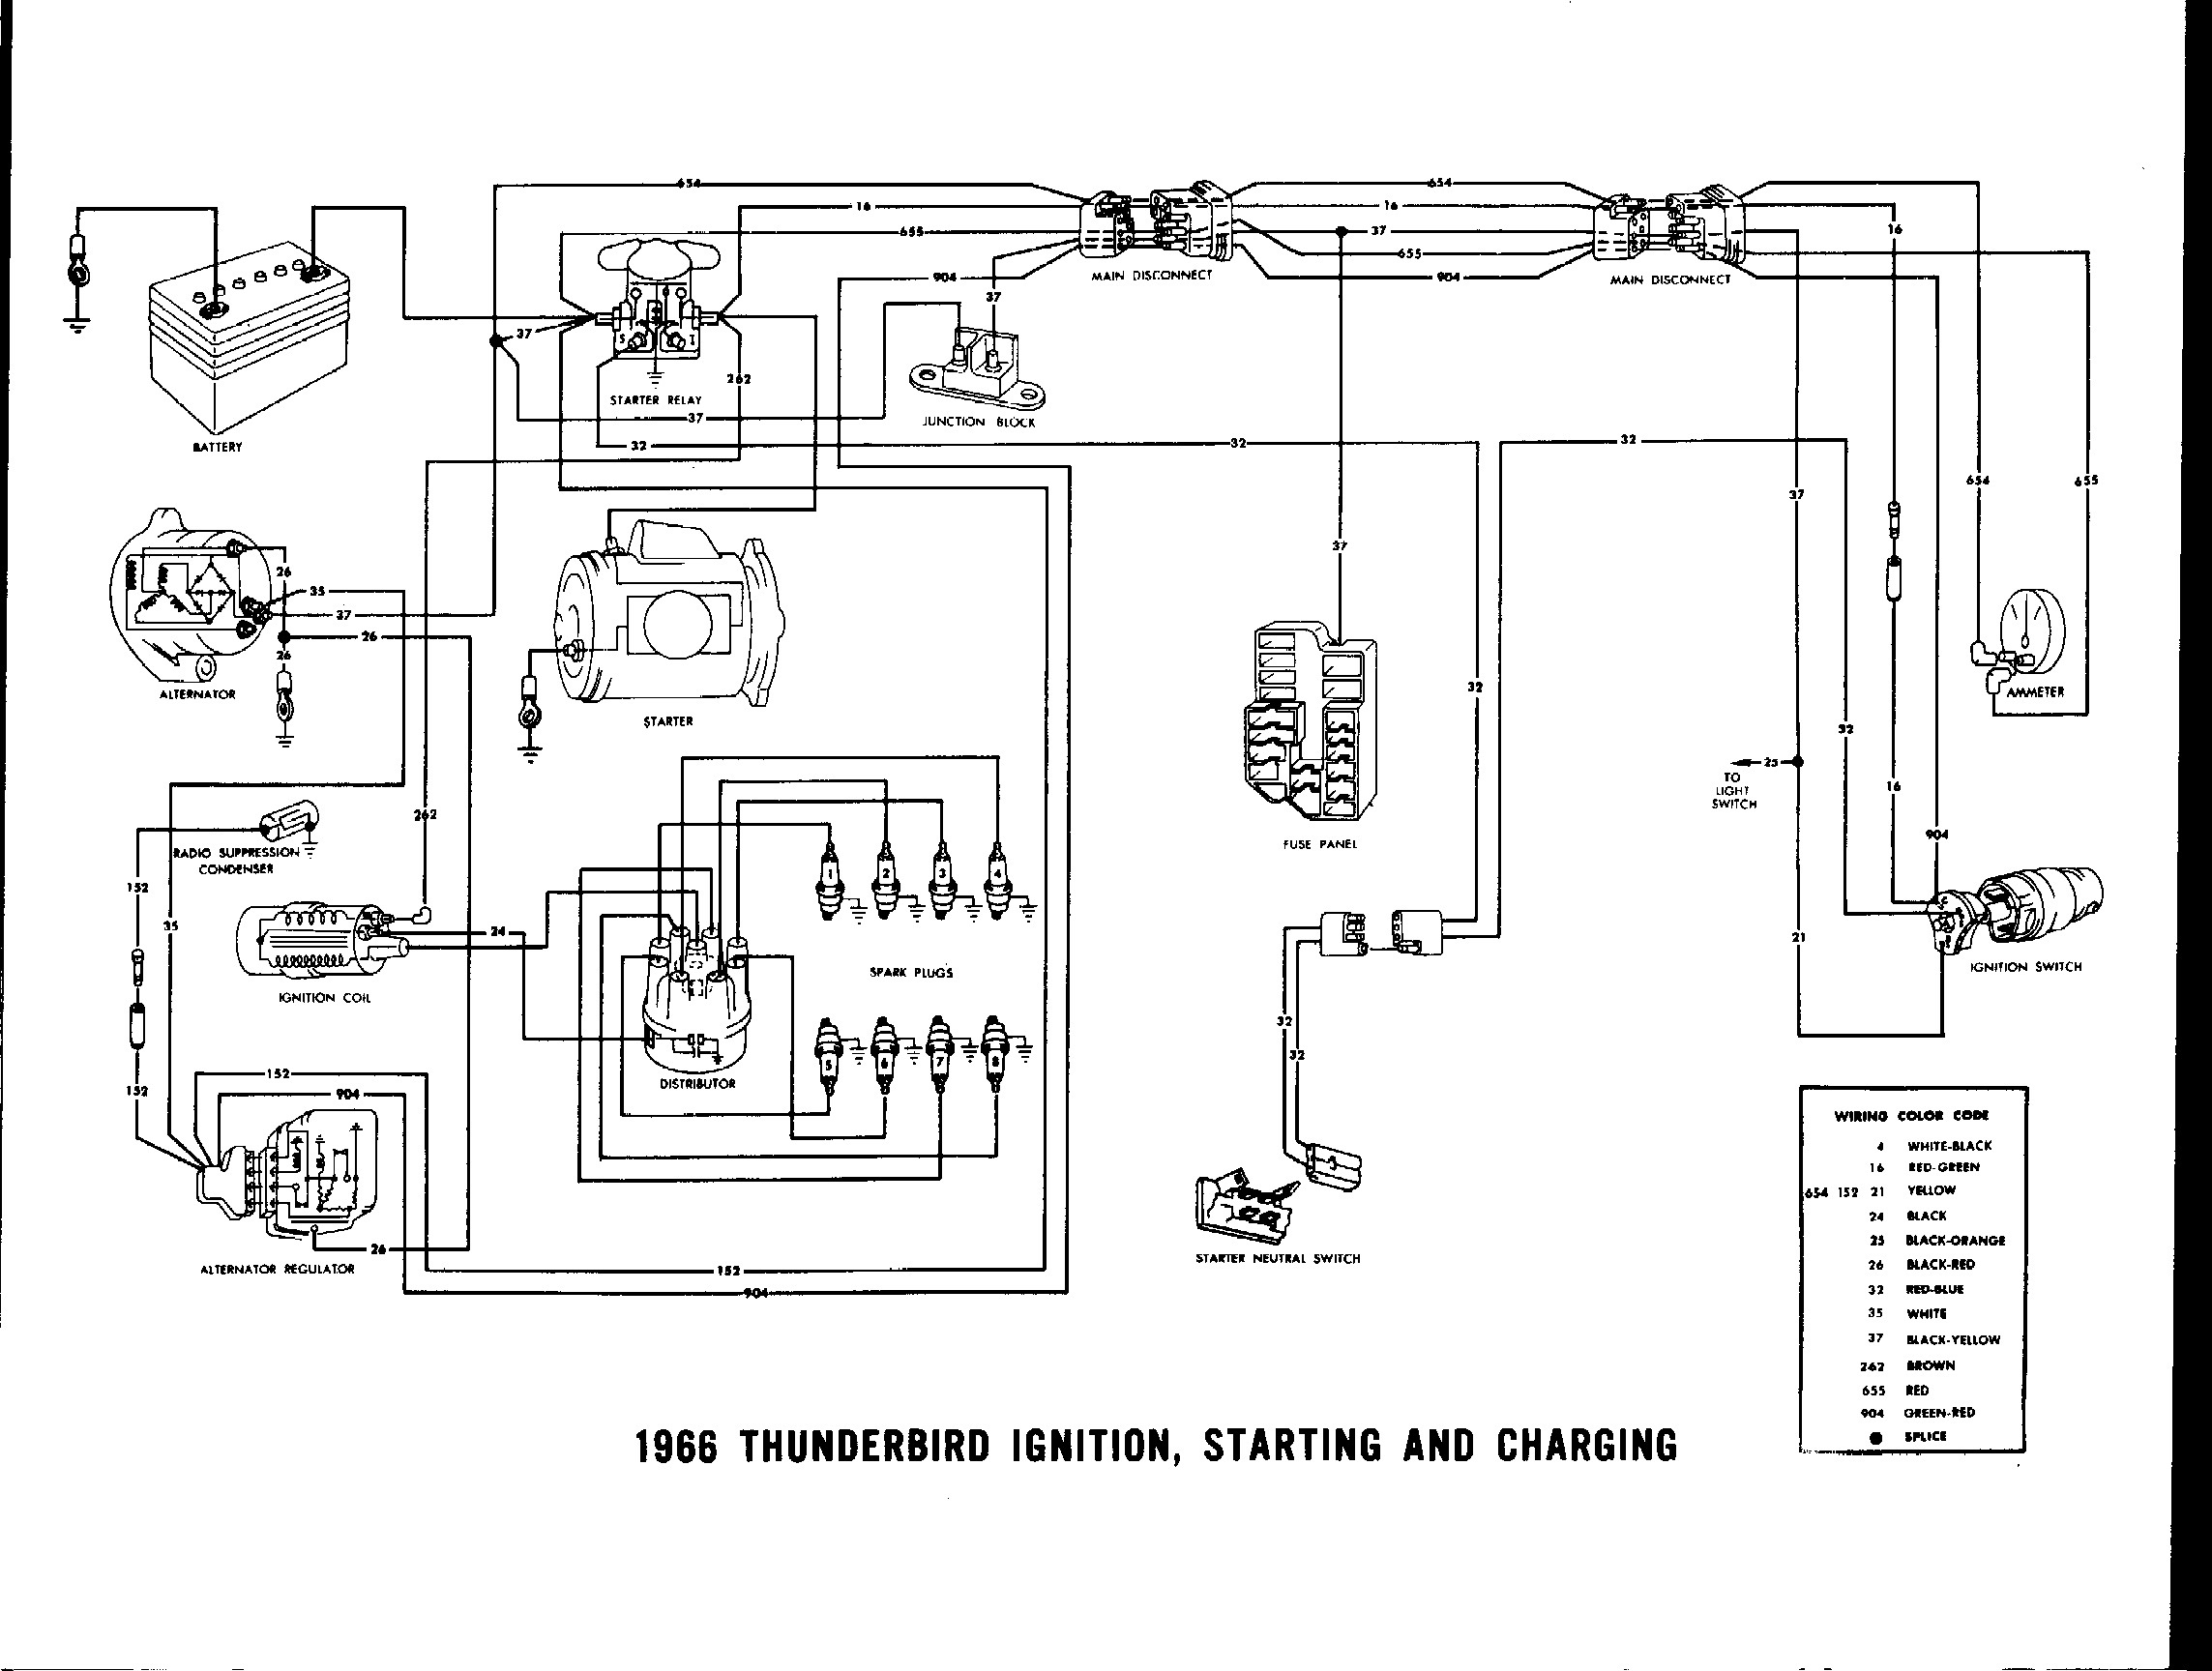 2012 12 31_223304_66tbird 1955 electrical wiring schematic suppliment 110 41 5 readingrat net 1966 thunderbird wiring harness at mifinder.co